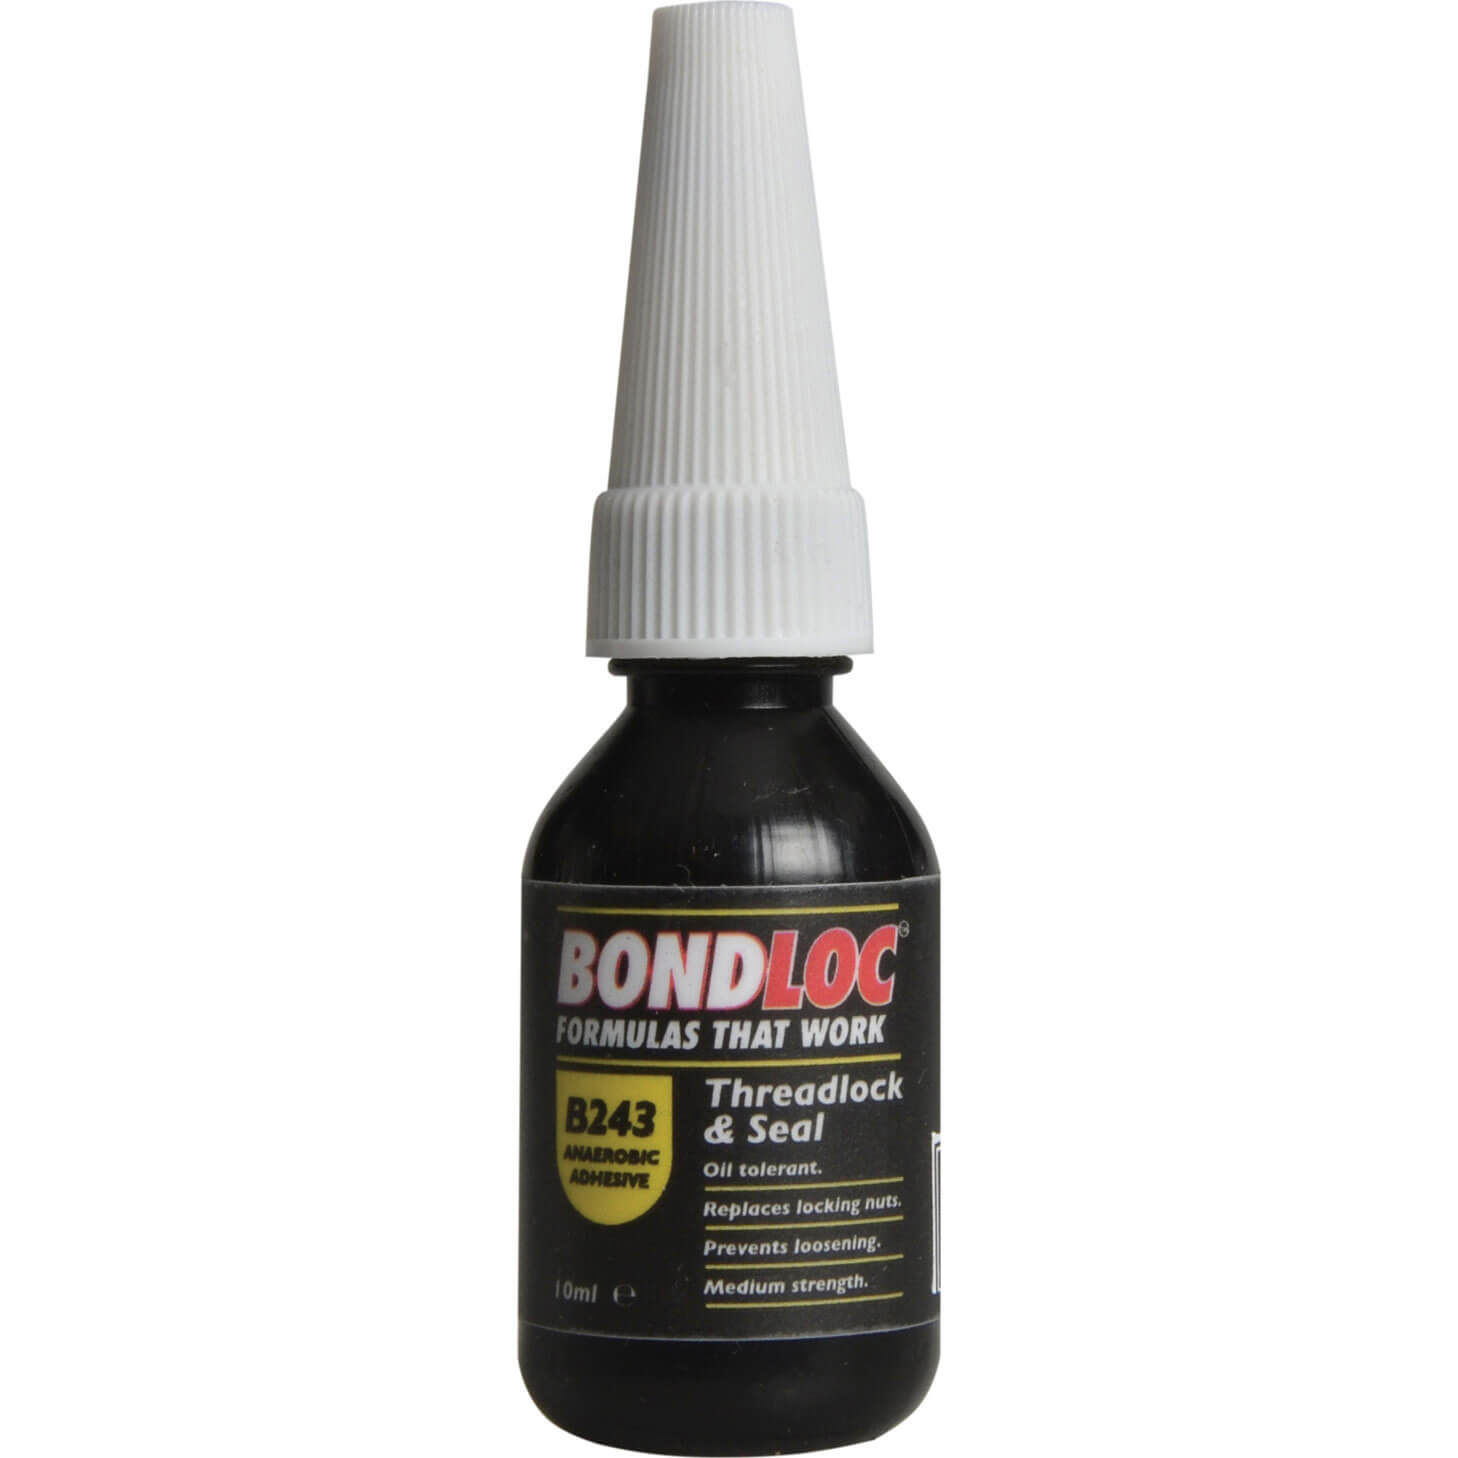 Image of Bondloc B243 Nutlock Medium Strength Threadlocking Sealant 10ml